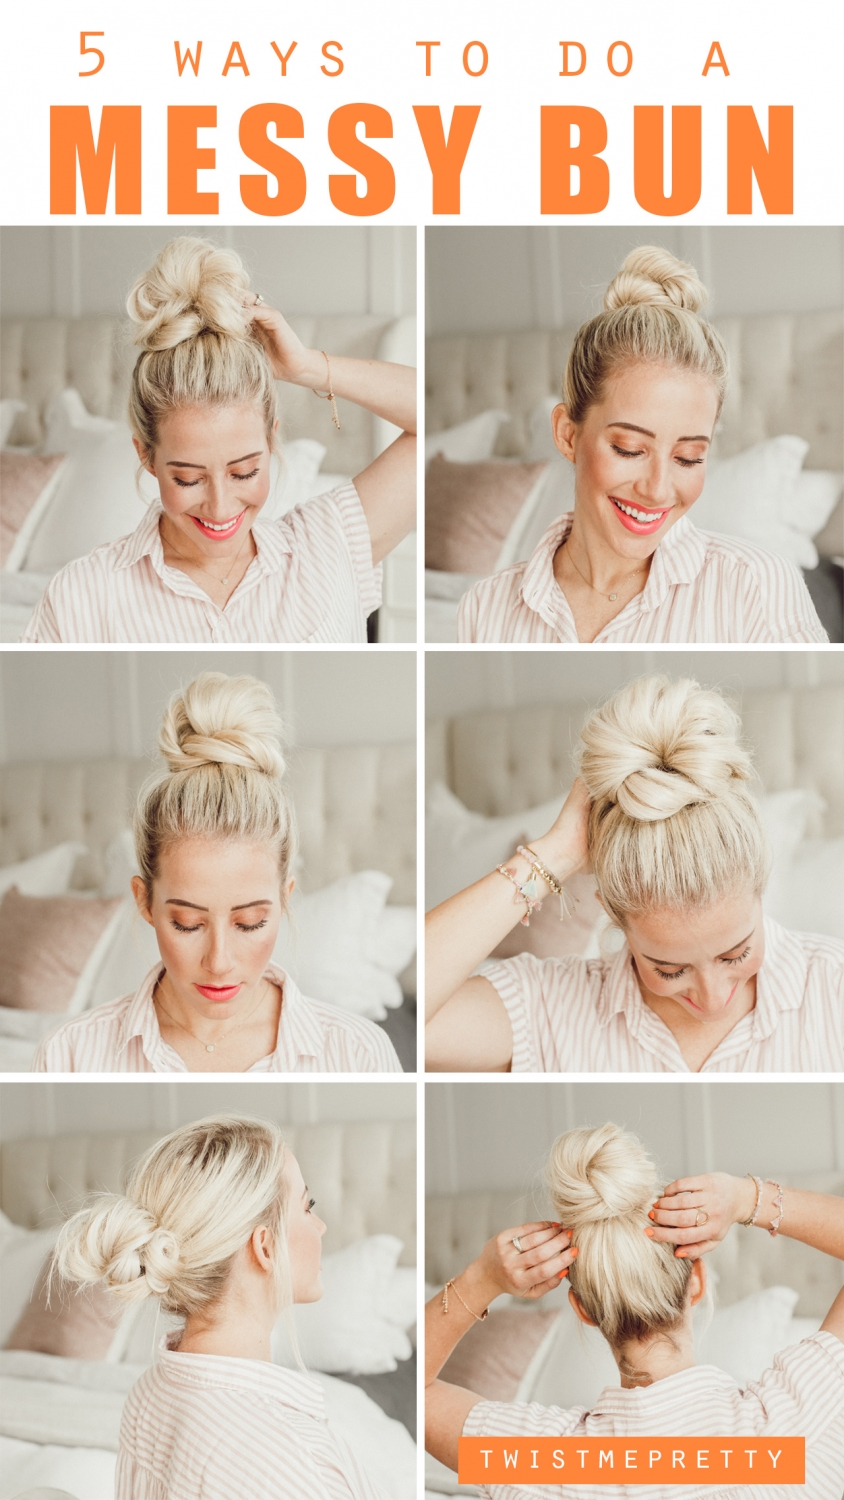 5 Ways To Do A Messy Bun Twist Me Pretty